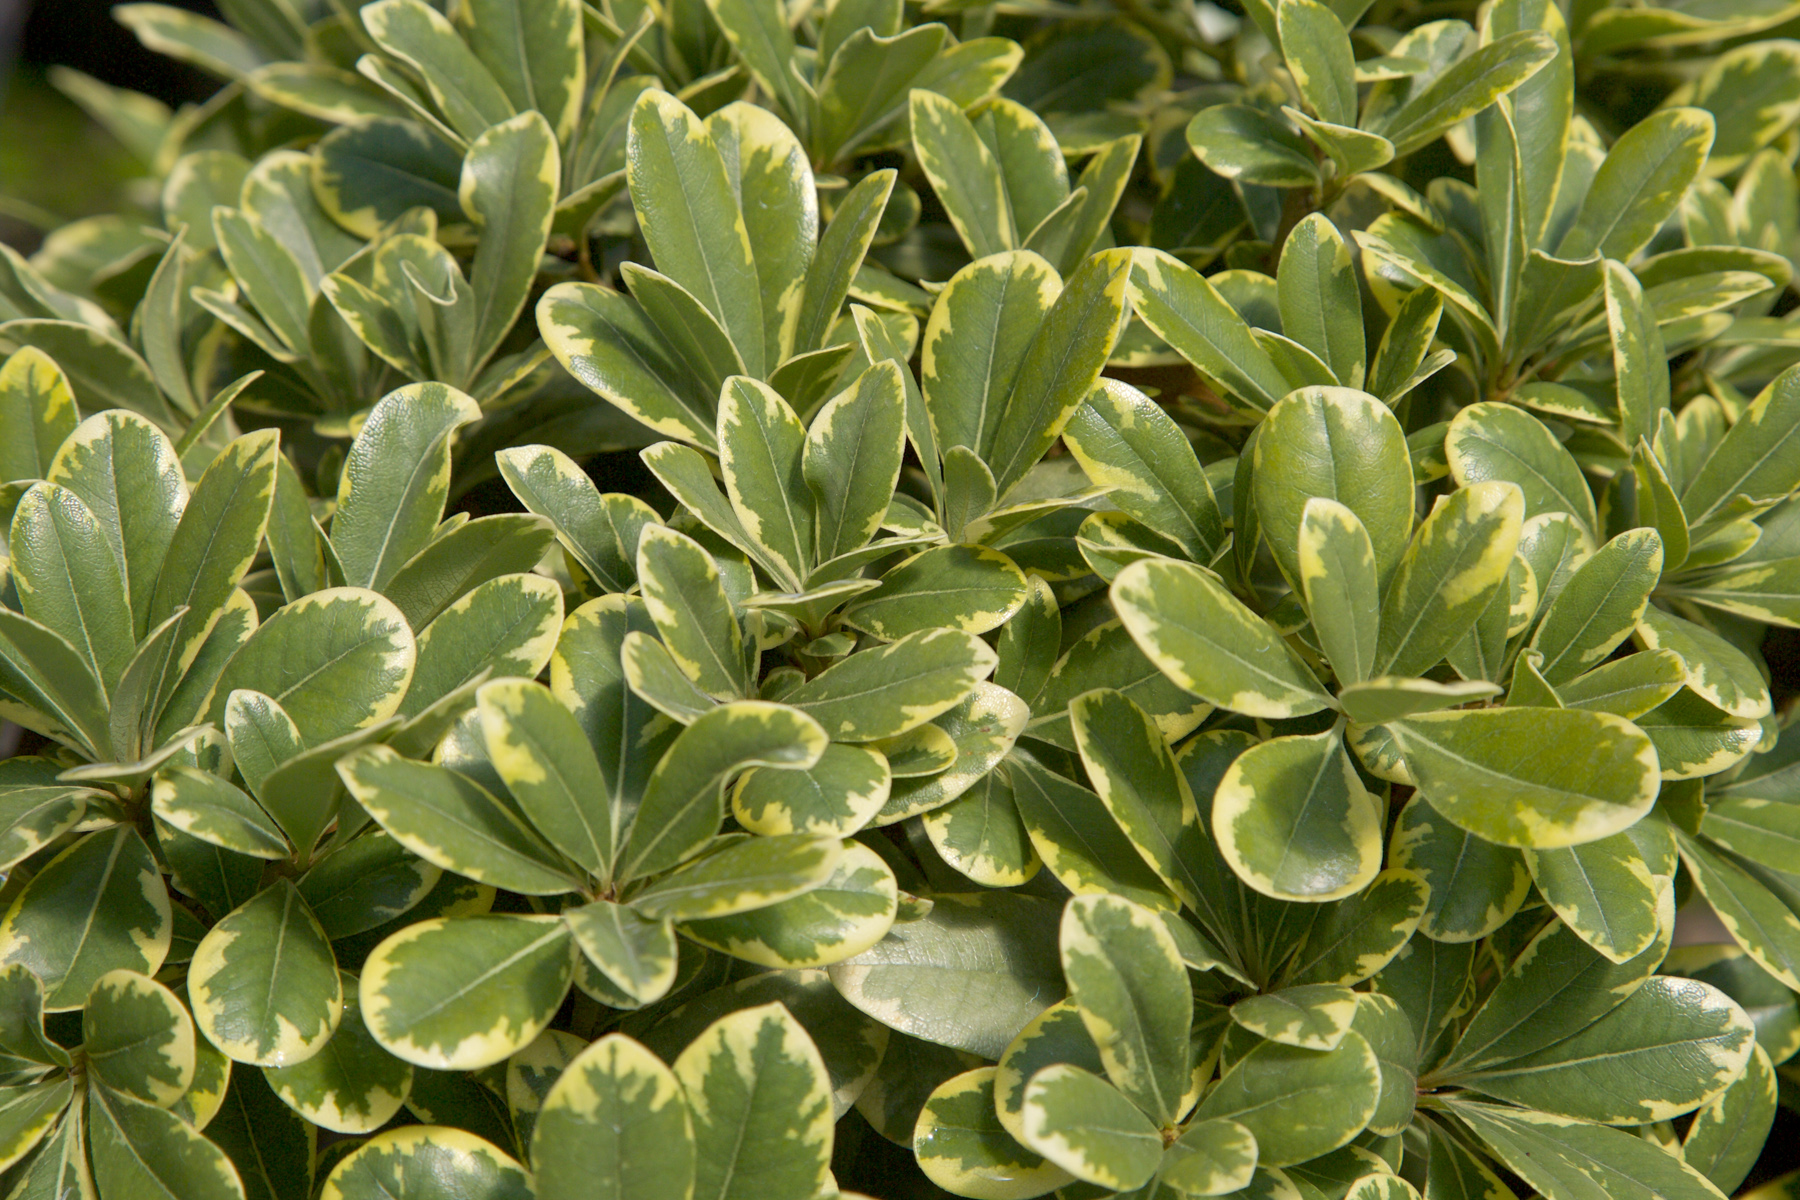 'Mojo' Japanese Pittosporum